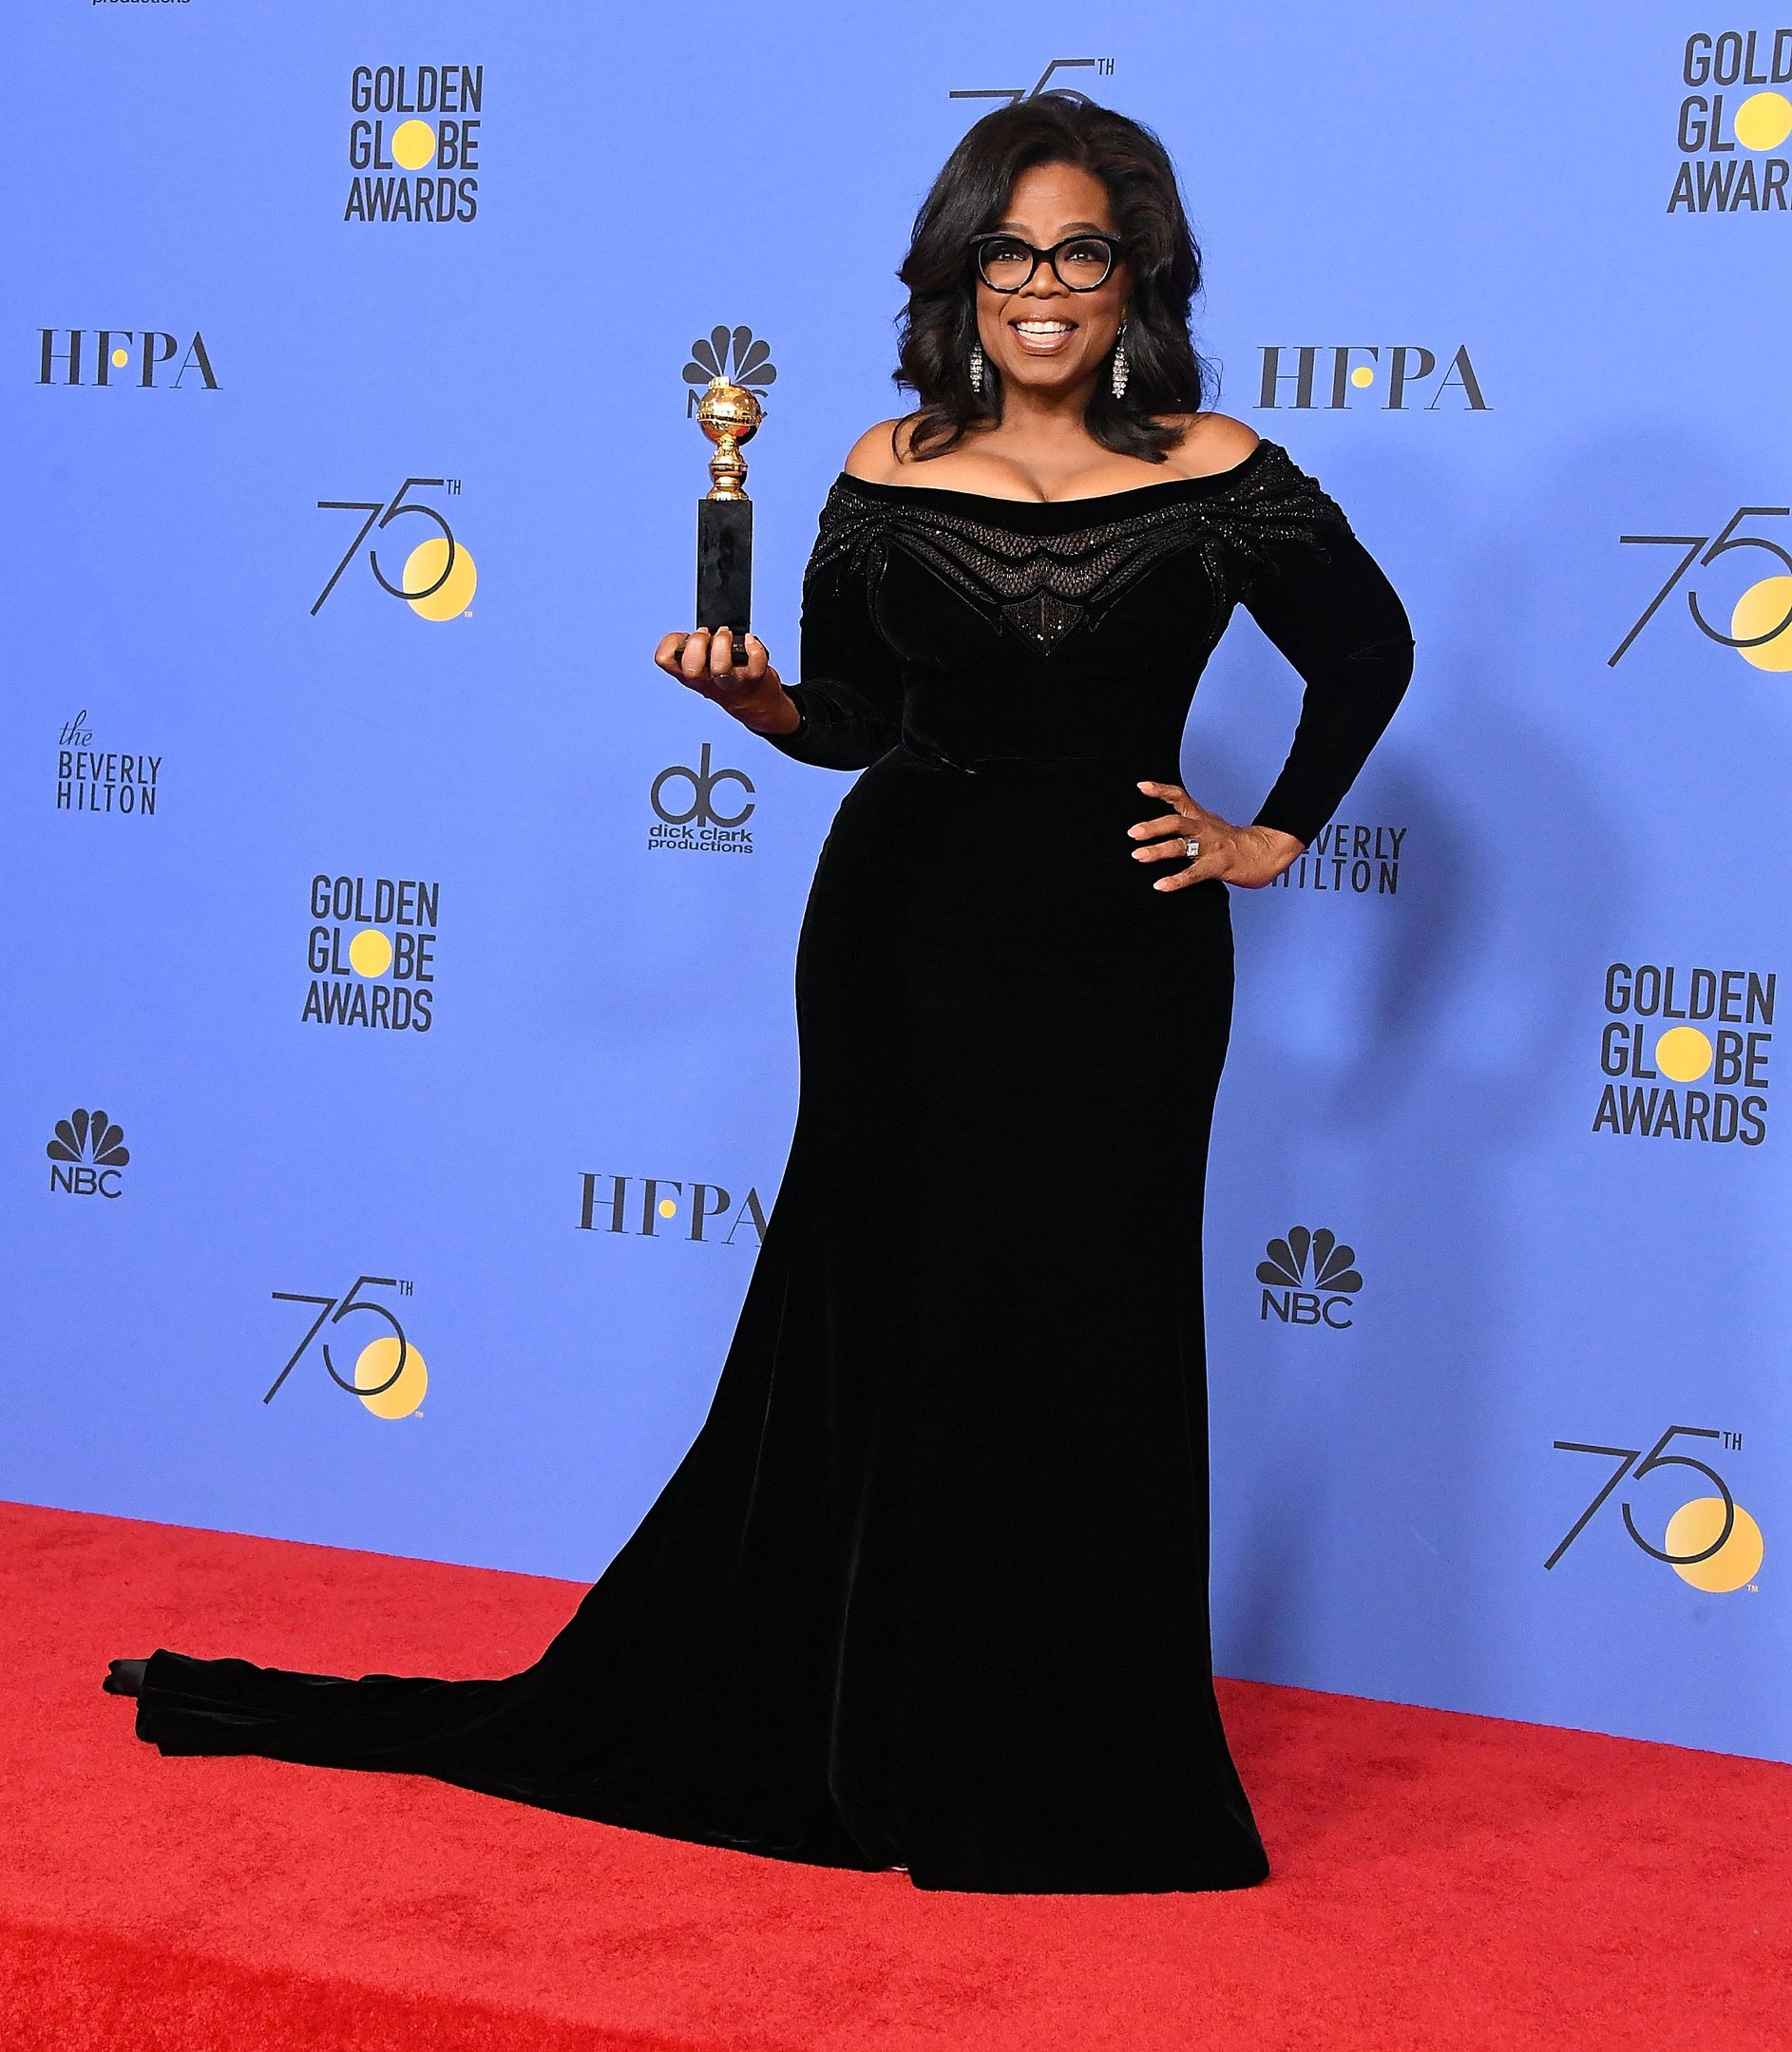 Oprah: Running for president 'would kill me'